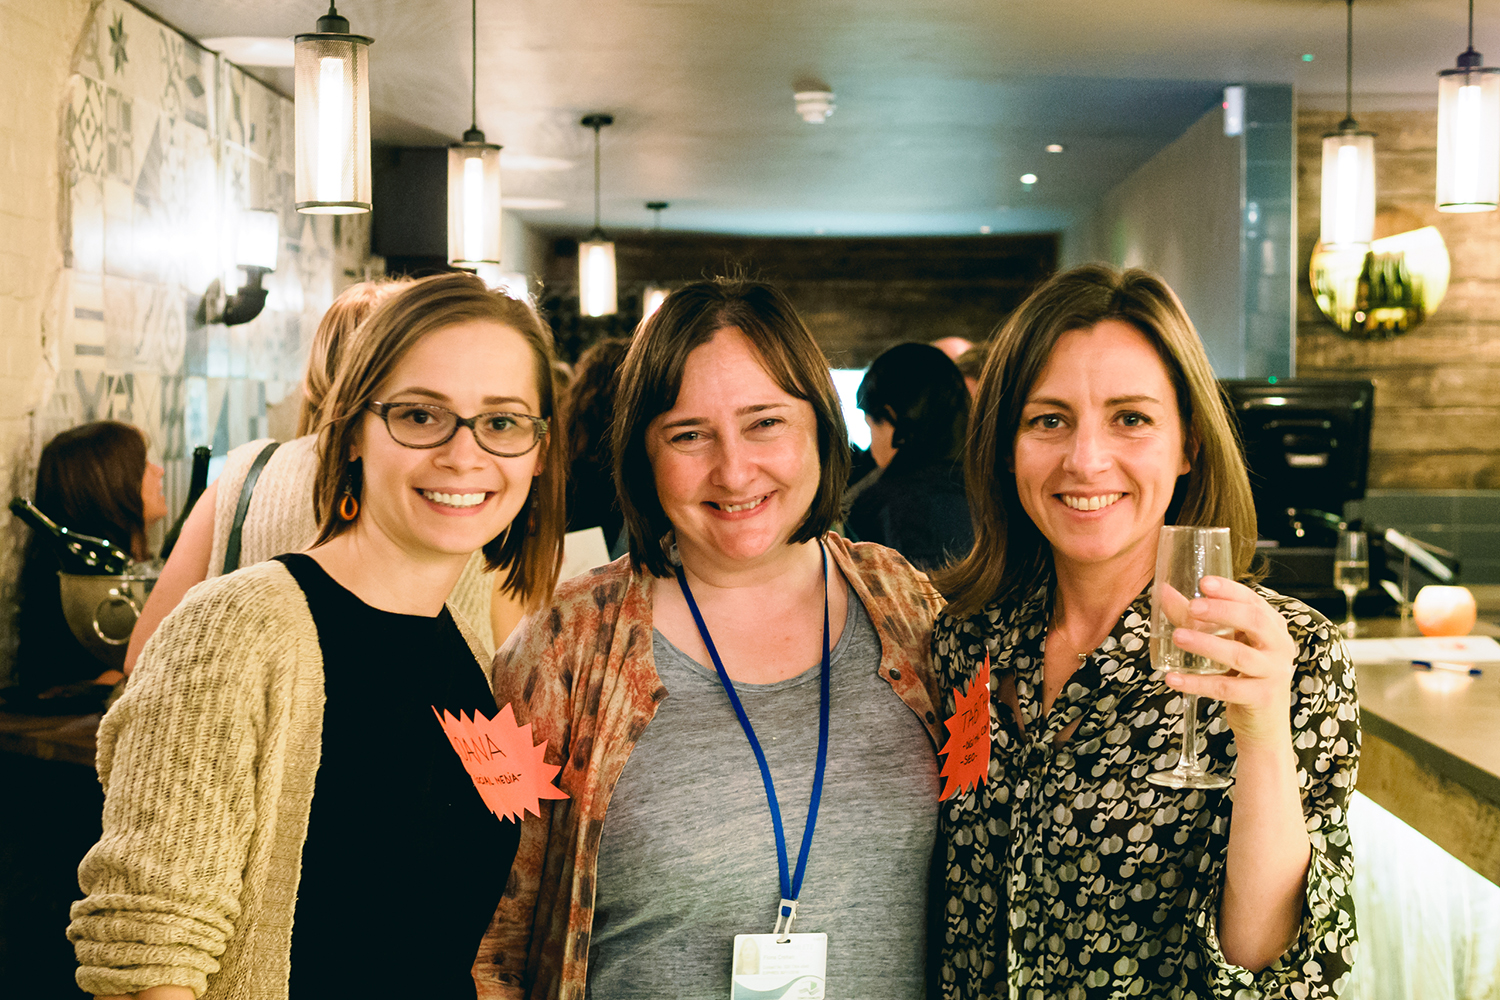 From left, Ioana Dragomir, Fiona Crehan and Tabitha Stapely